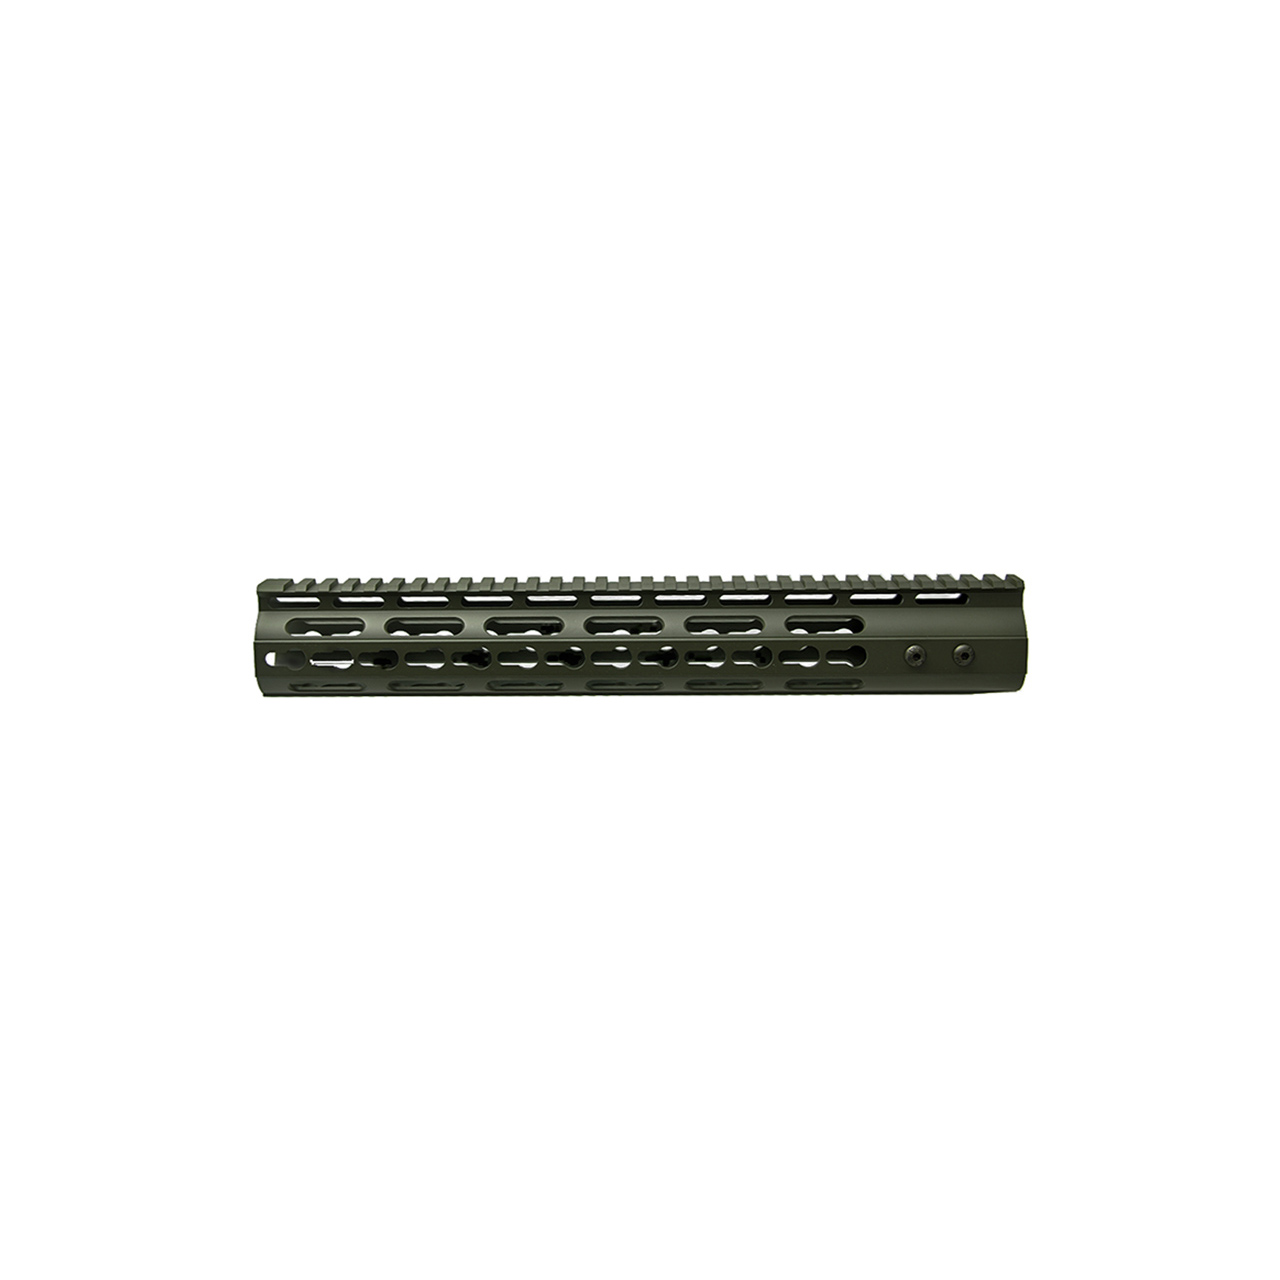 AR15 3 Sided KeyMod Hand Guard, Olive Drab Green Cerakote